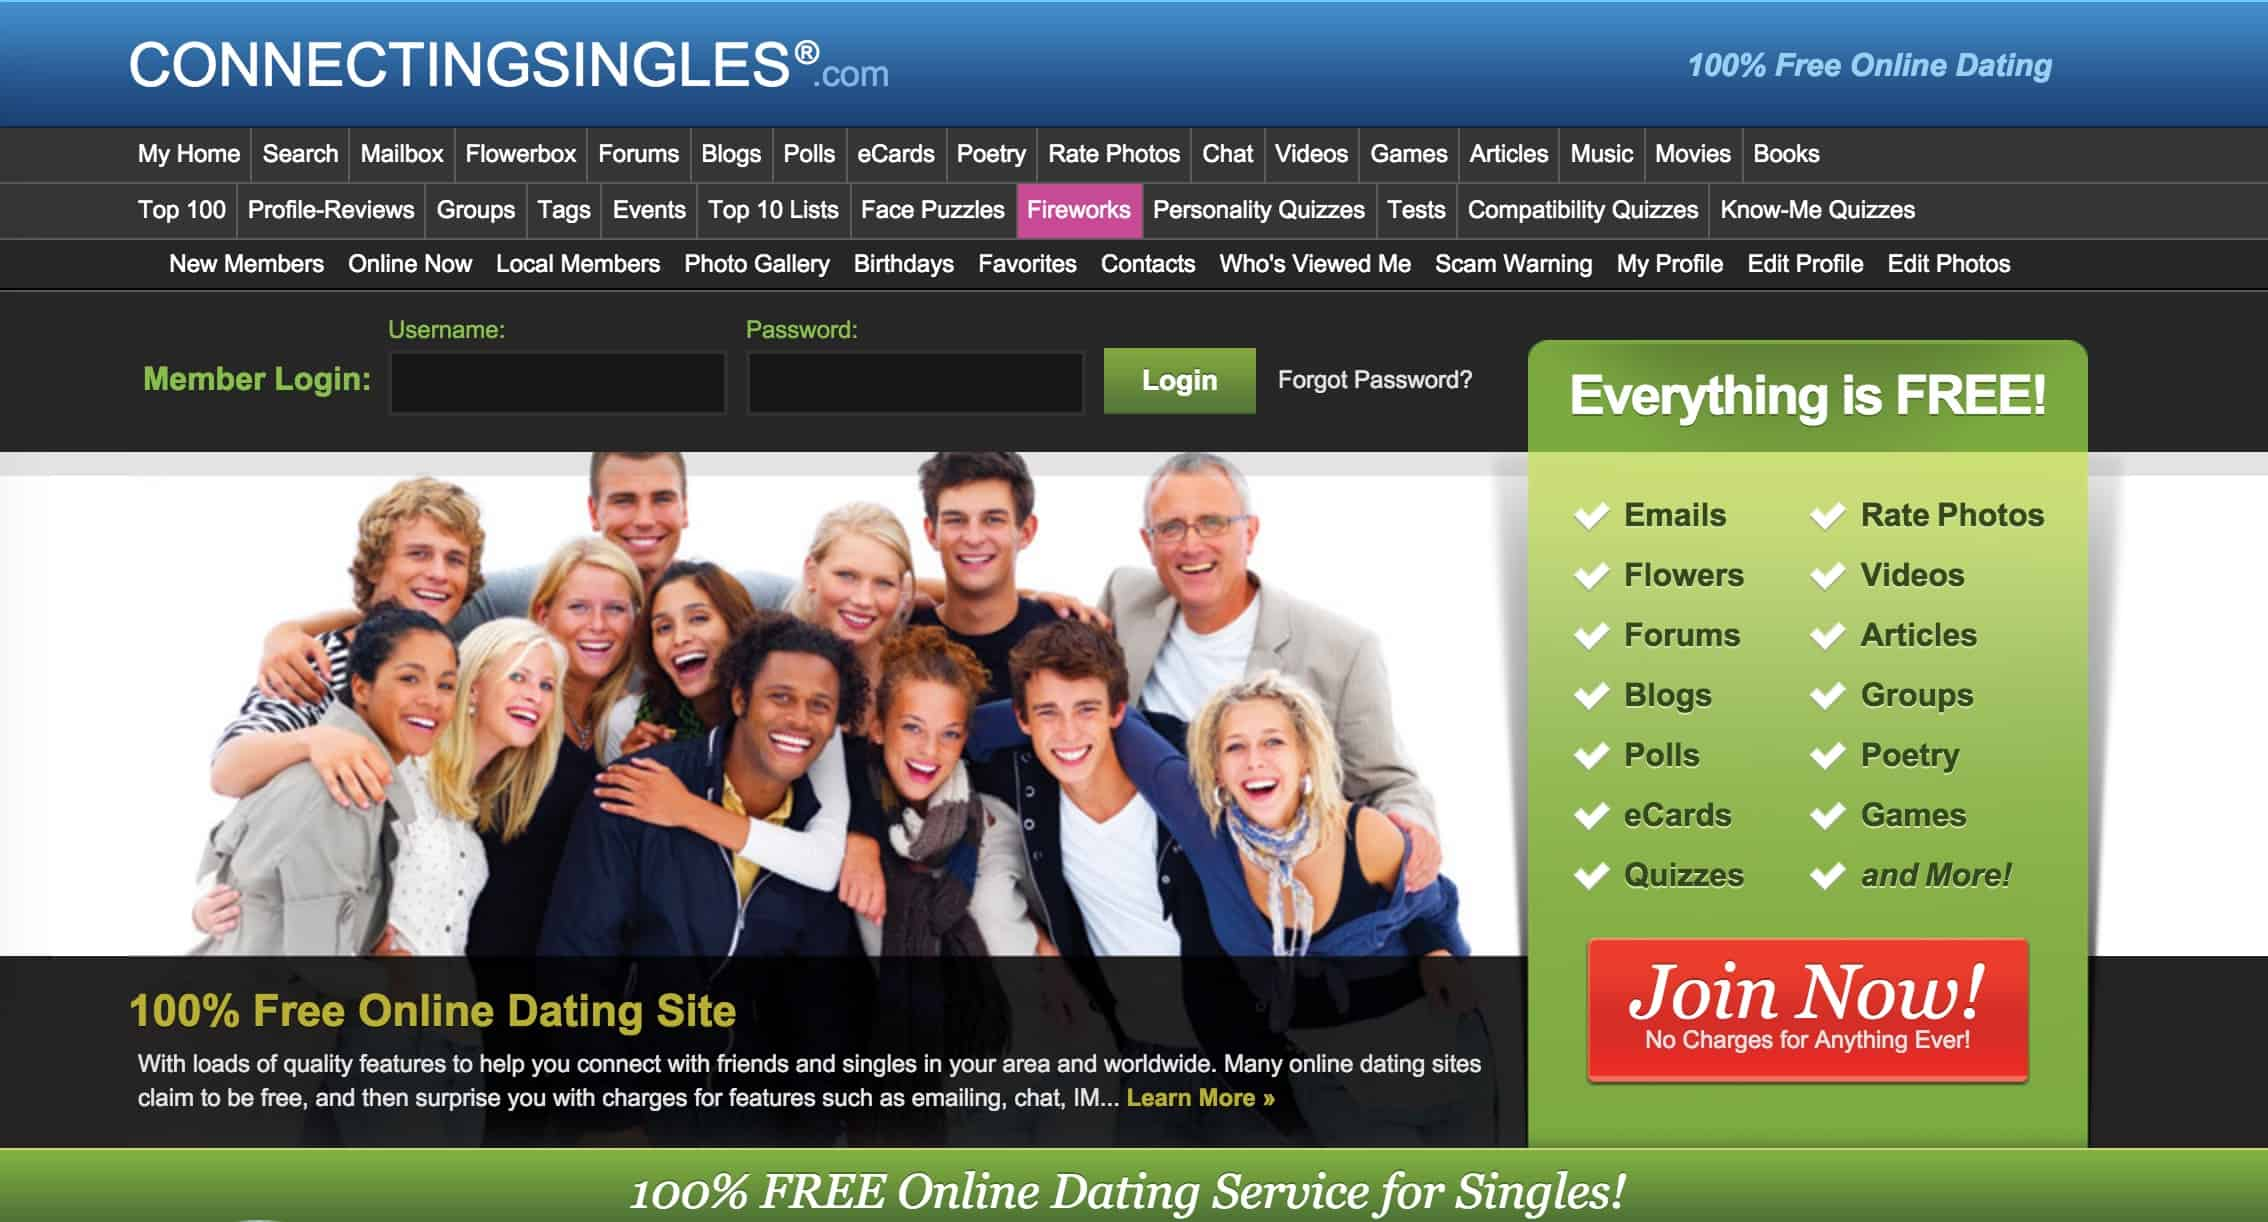 100% free online dating in wendell Meet wendell singles online & chat in the forums dhu is a 100% free dating site to find personals & casual encounters in wendell.